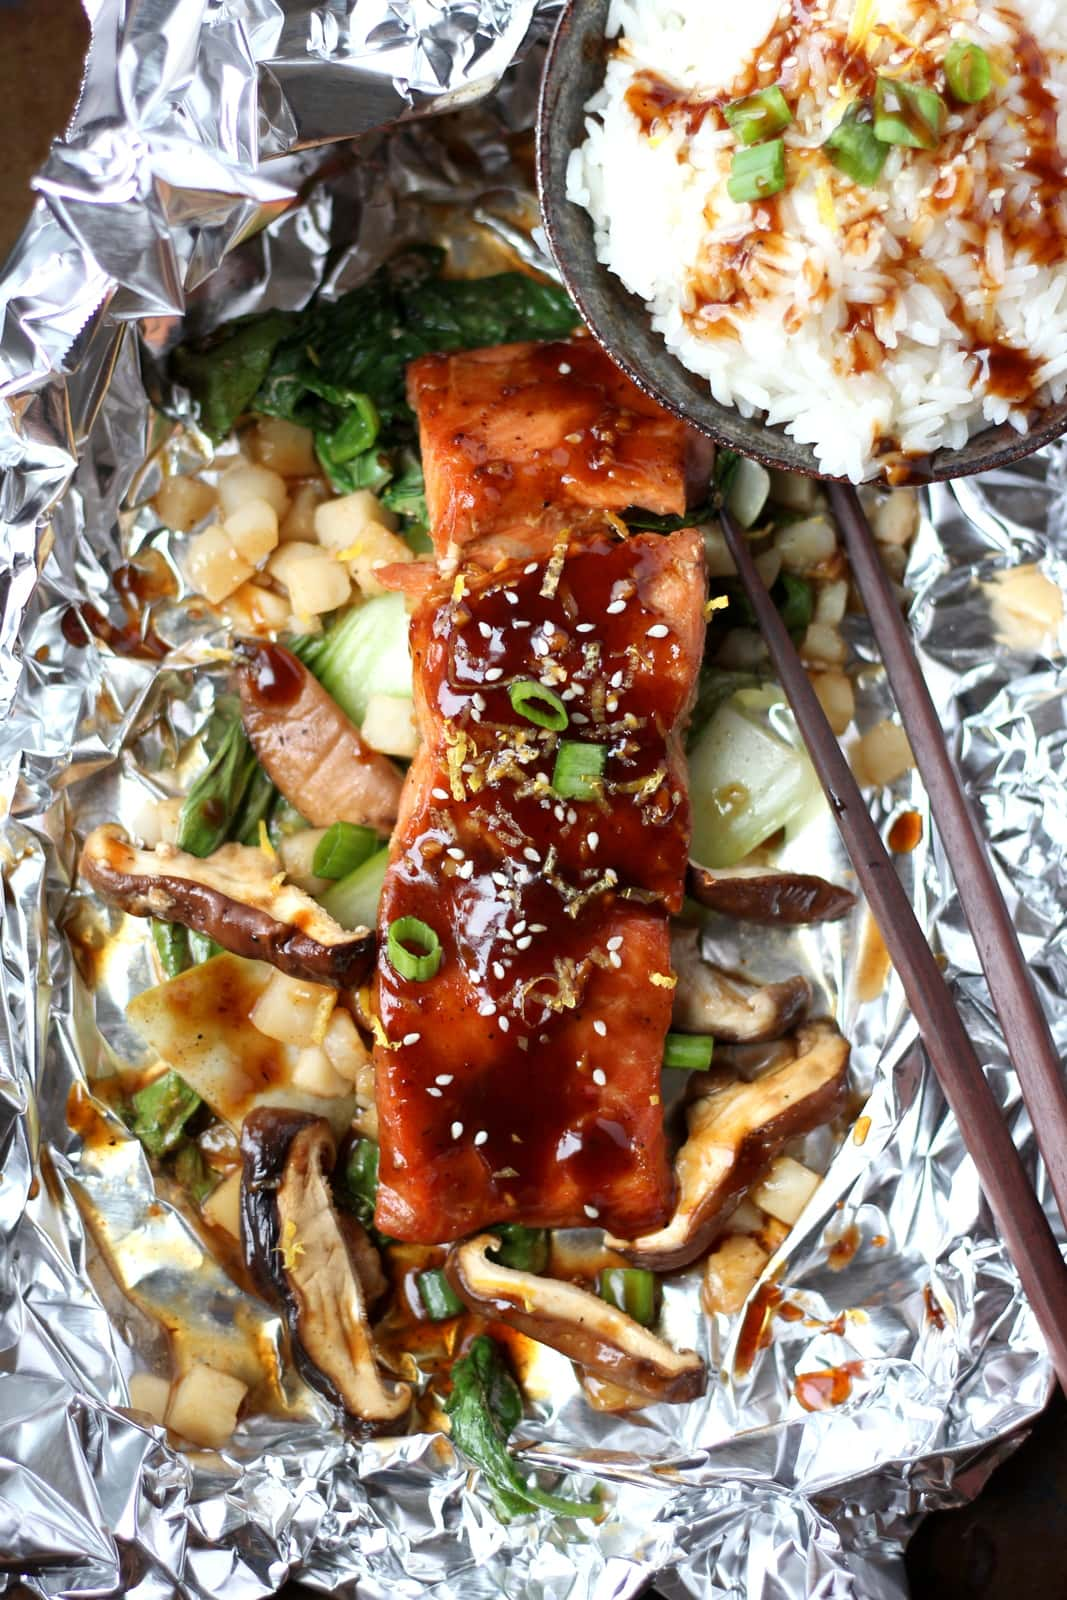 Miso Salmon in Foil with Shiitake Mushrooms and Baby Bok Choy over Rice